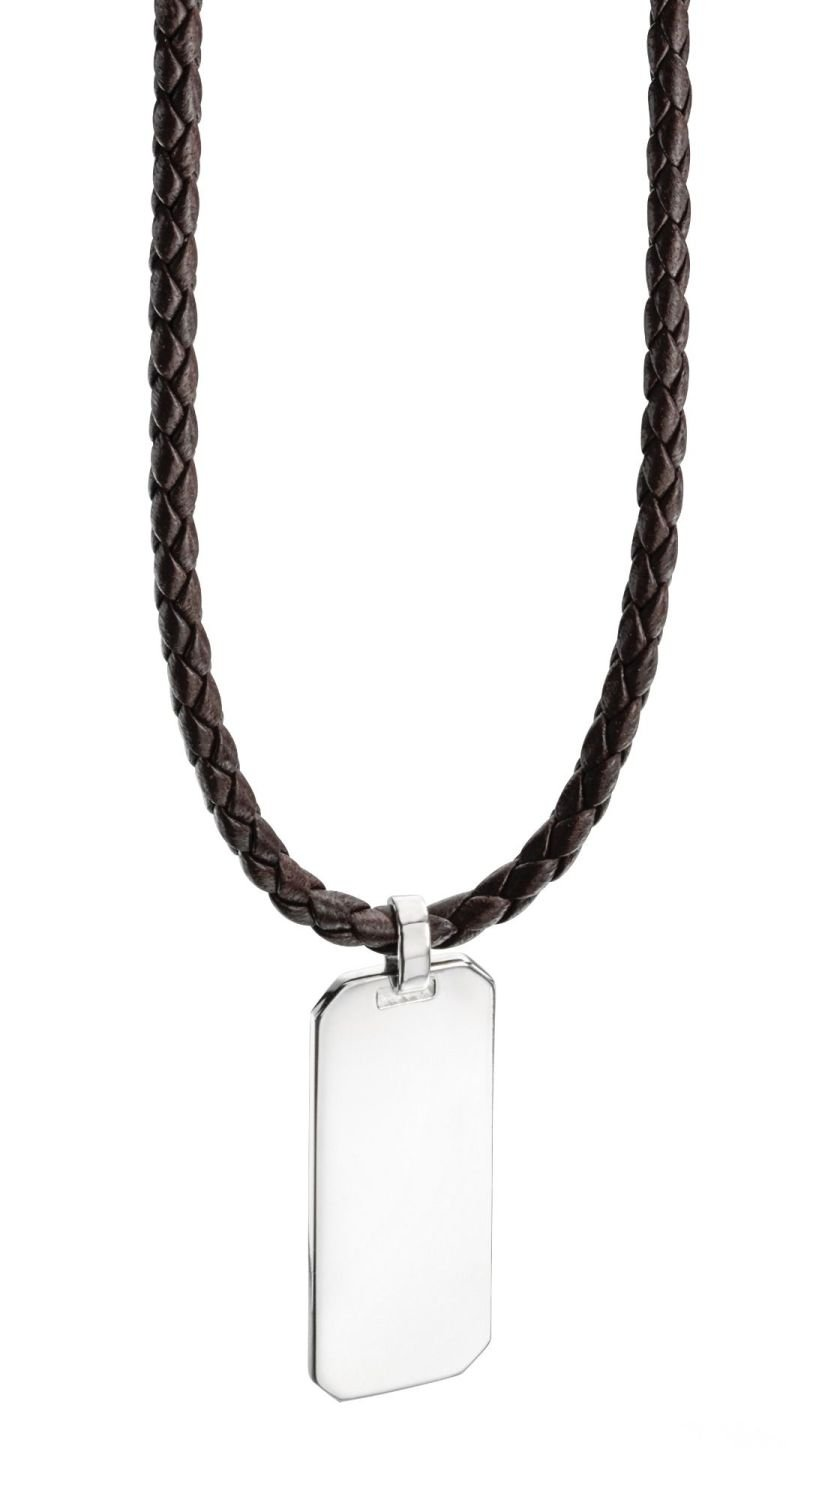 MEN'S BROWN LEATHER NECKLACE WITH 925 SILVER DOG TAG